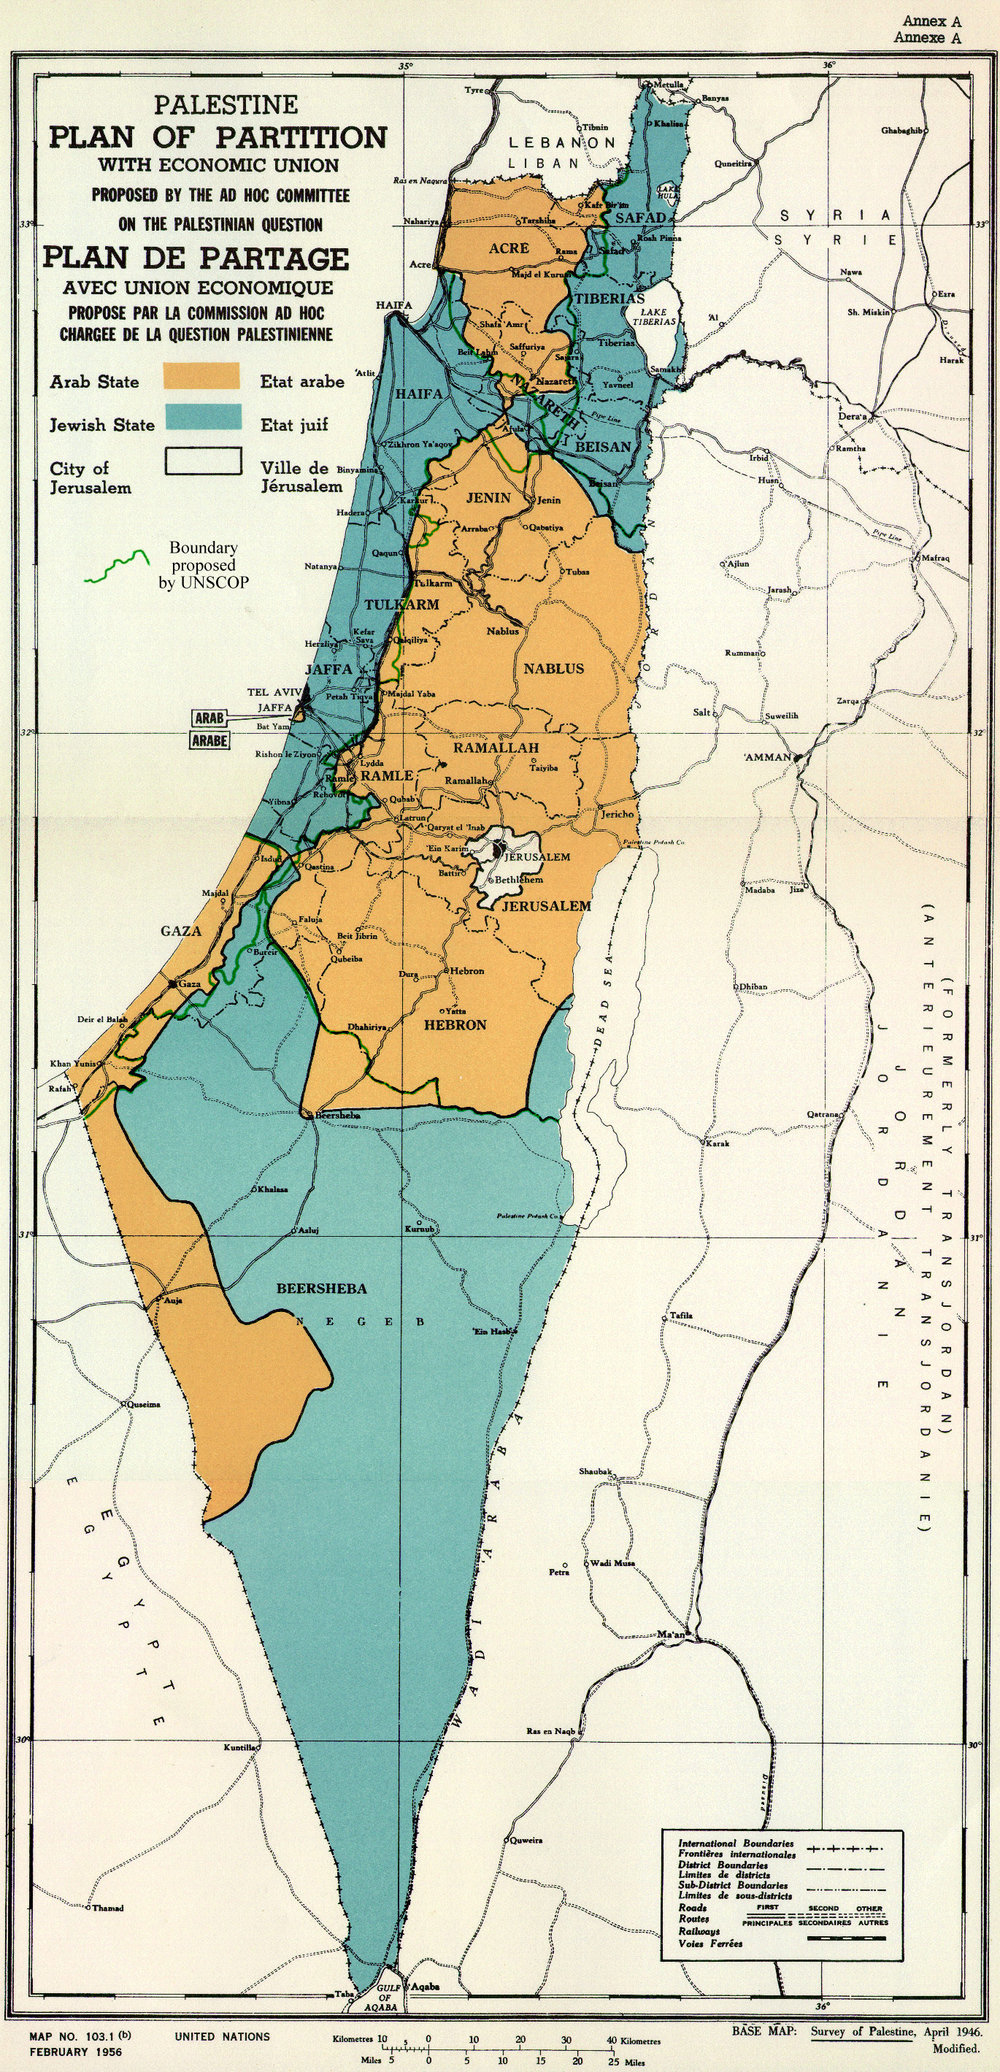 PLAN OF PARTITION is from UNGA Resolution 181 (27 Nov 1947). Overdrawn UNSCOP boundary is from United Nations Special Committee on Palestine, Report to the General Assembly, 3 Sep 1947, Volume II, A/364, Add. 1., [Public Domain, https://commons.wikimedia.org/w/index.php?curid=27649381]